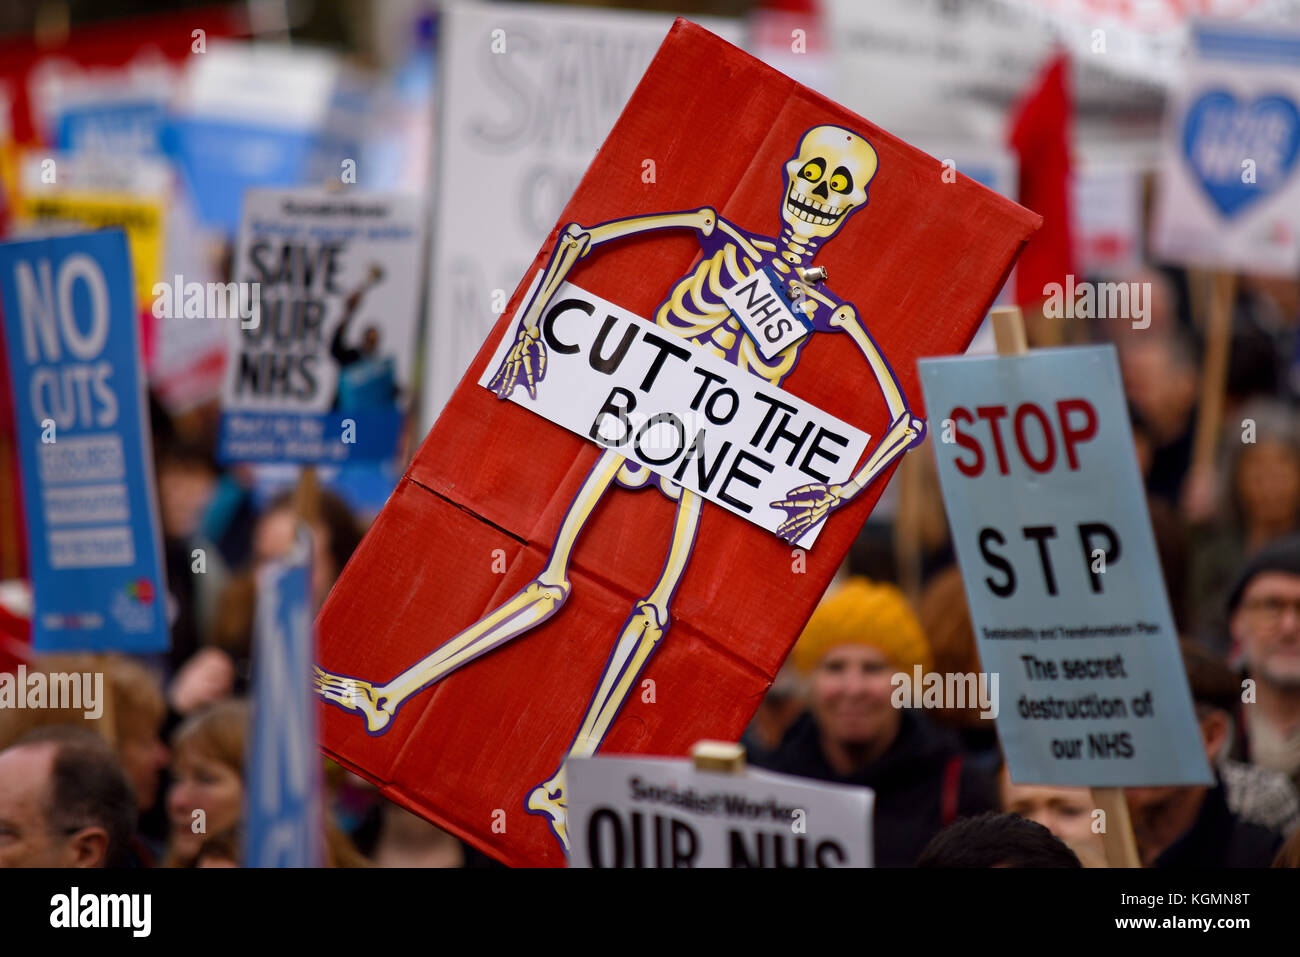 cut-to-the-bone-placard-during-our-nhs-protest-demonstration-rally-KGMN8T.jpg